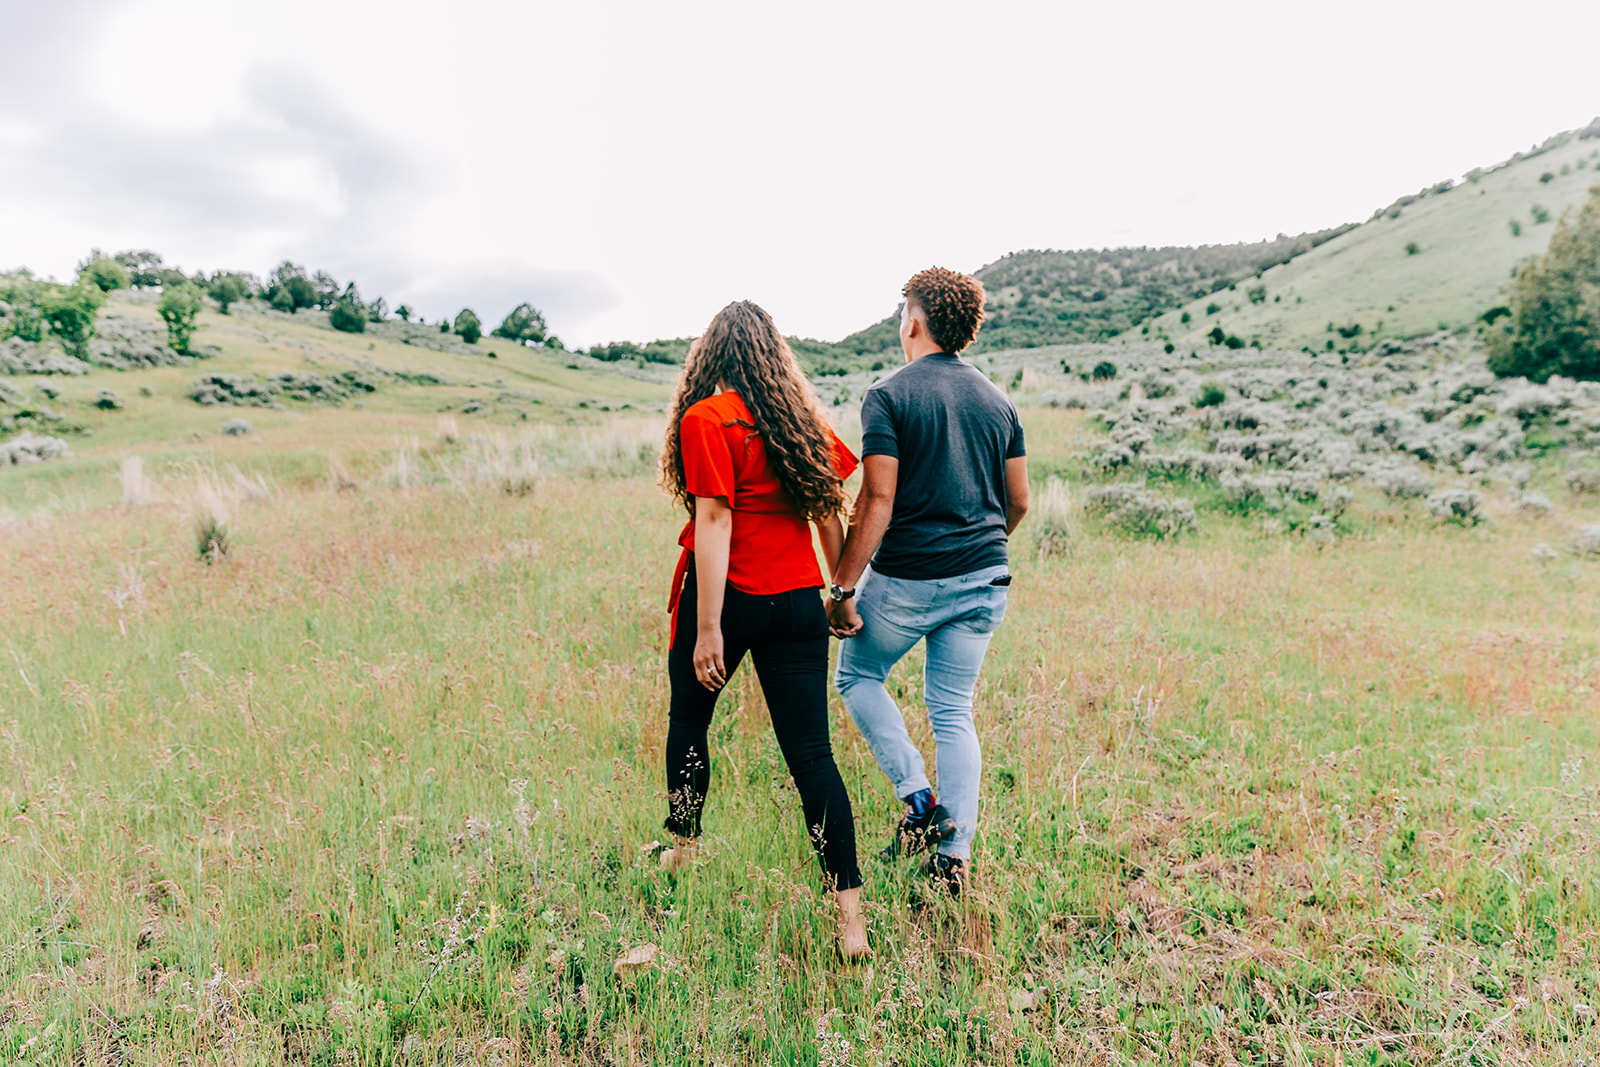 Couple walking away holding hands engagement photos inspiration outfit inspo professional engagement pictures by Bella Alder Photography northern utah engagement photographer #bellaalderphoto #engagements #mountainengagements #utahengagements #weddingplanning #engagementphotographer #utahengagementphotographer #couplesphotography #engagementsession #utahcouples #paradiseutah #cachevalleyutah